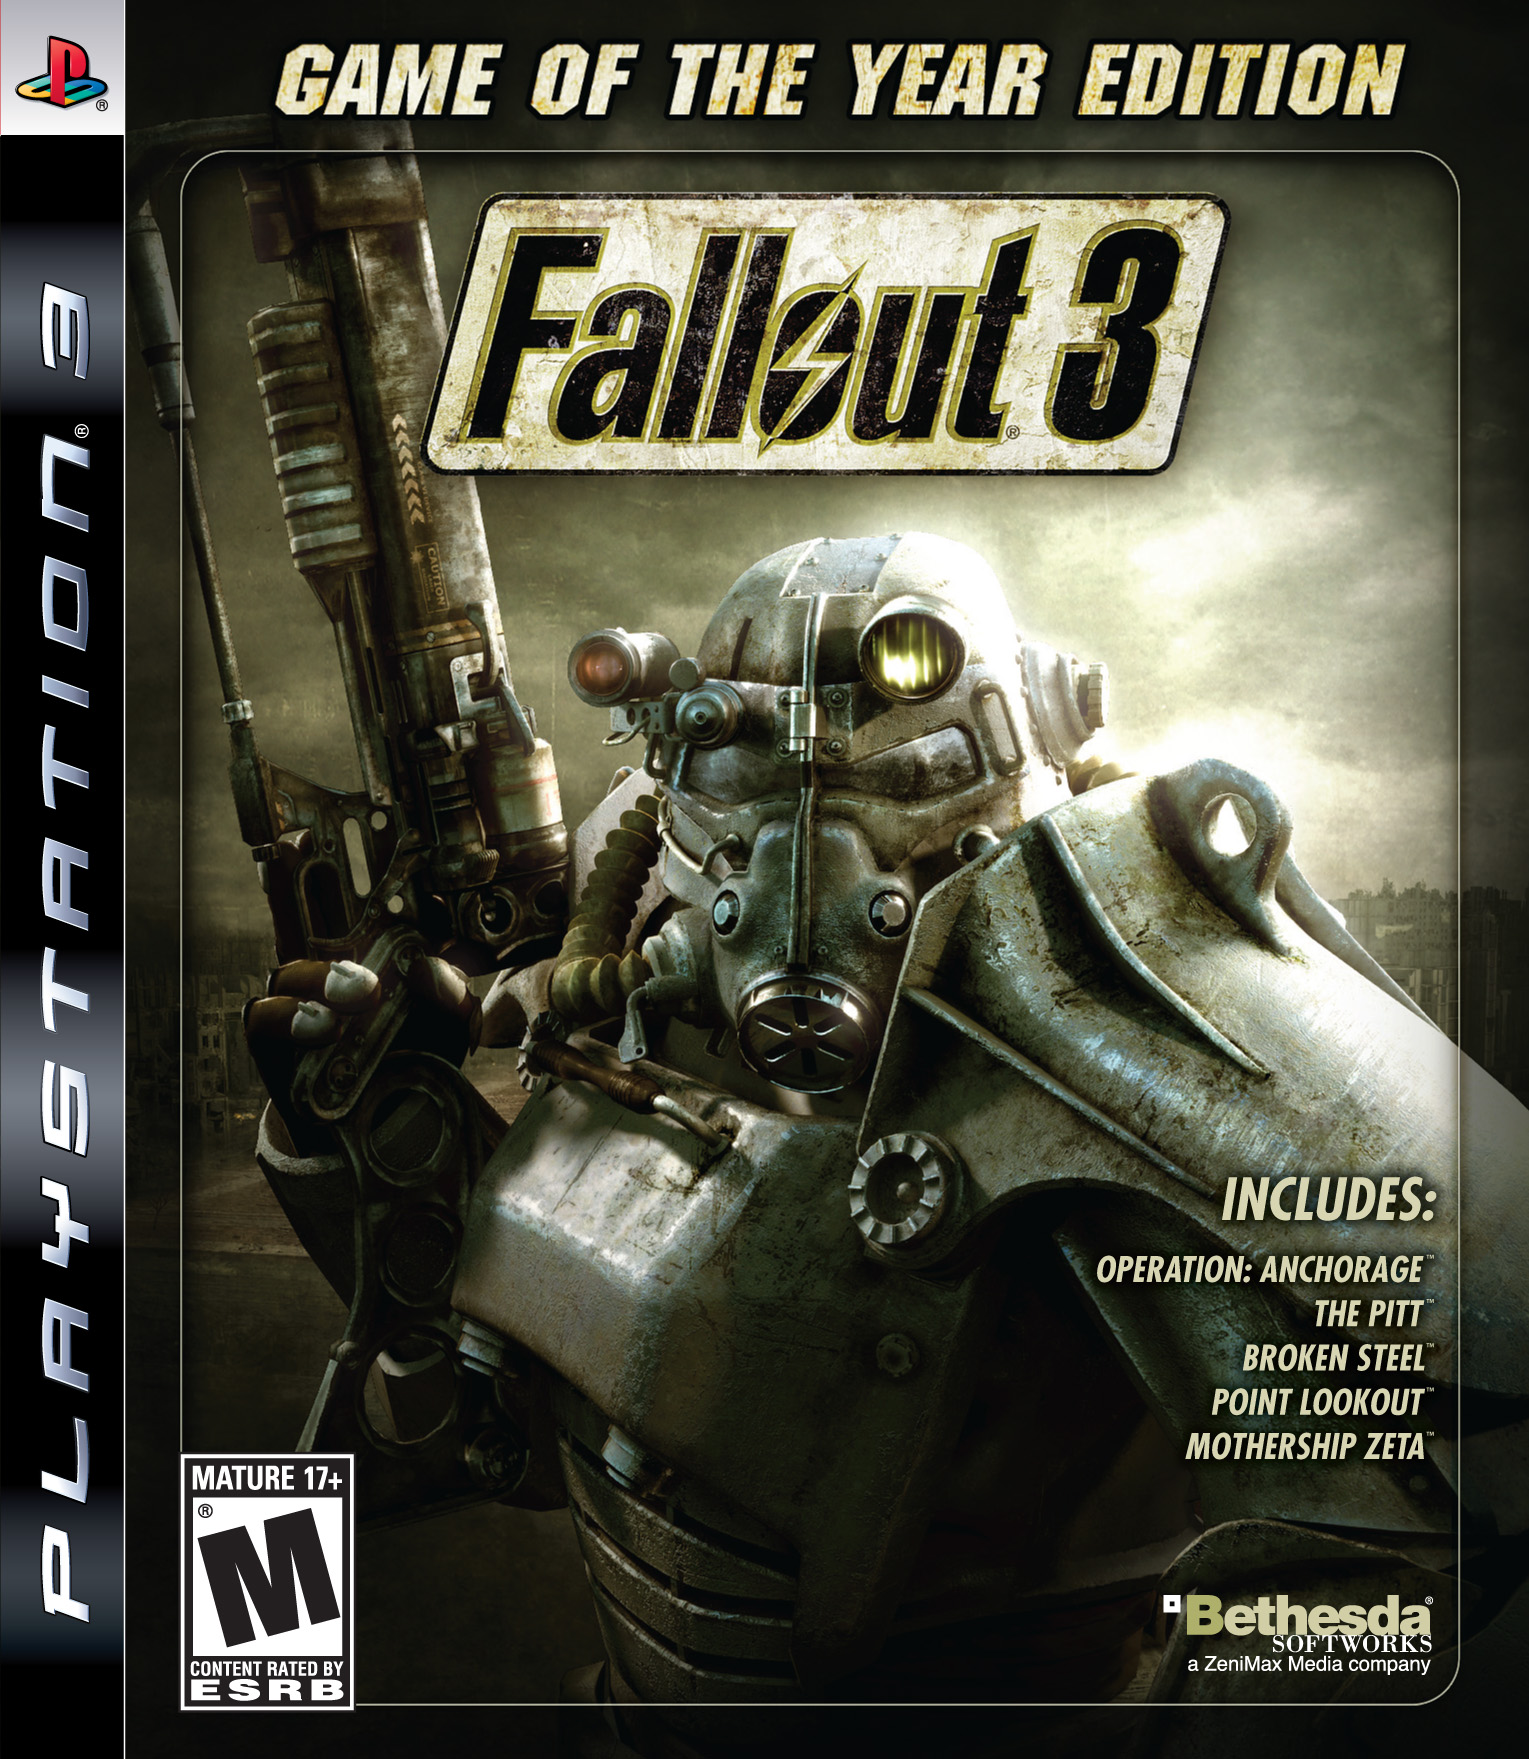 Fallout 3 (PlayStation 3) | Fallout Wiki | FANDOM powered by